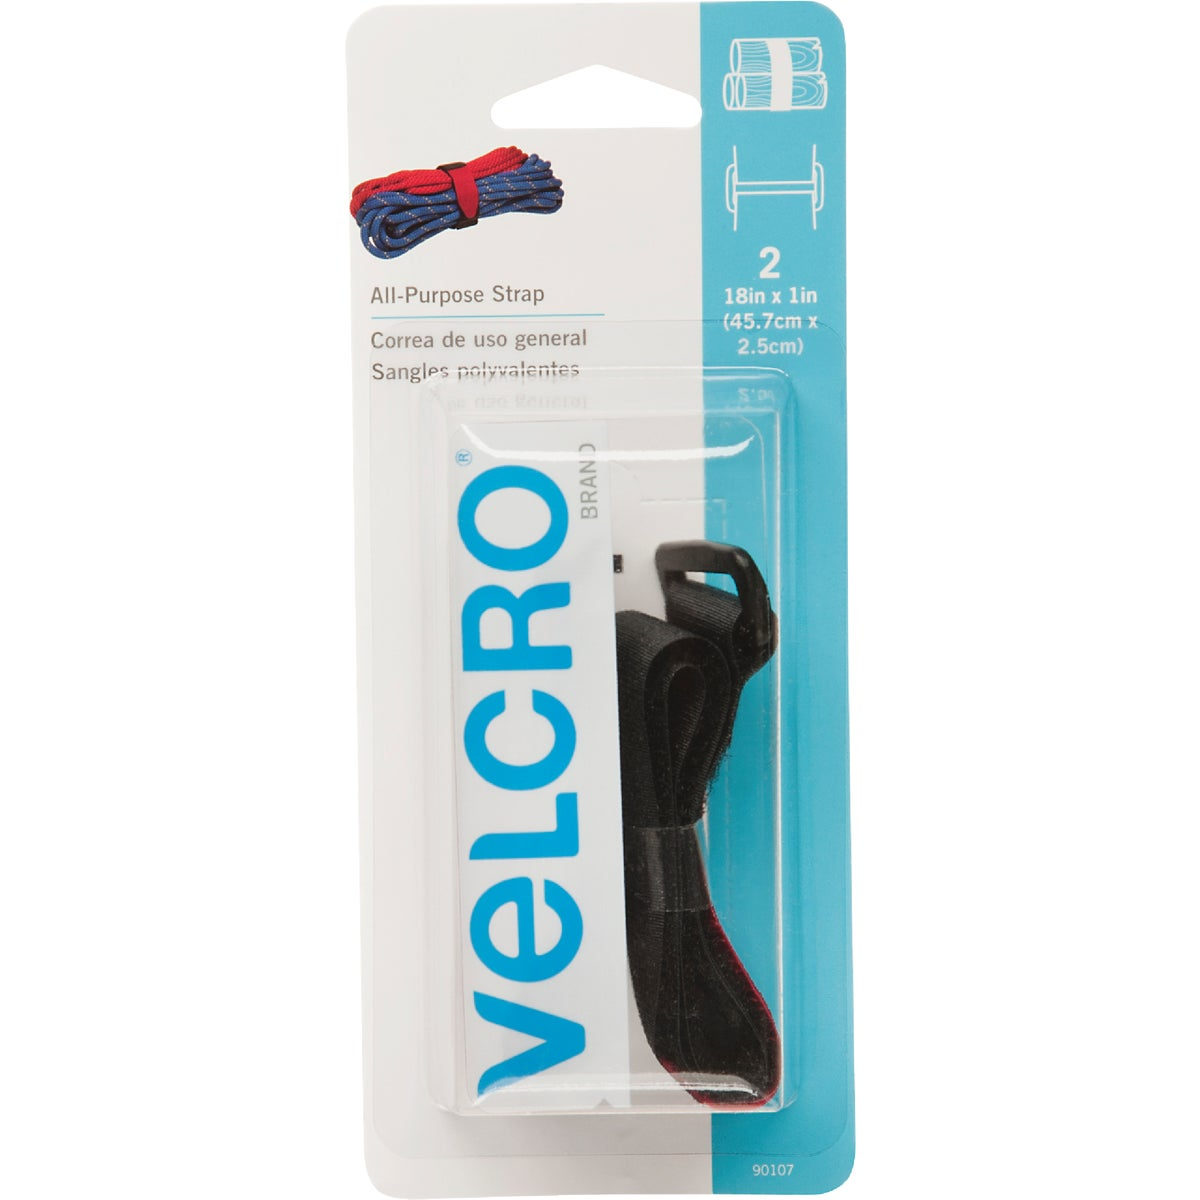 STRAP ADHESIVE FASTENER - 90107 by Velcro Usa